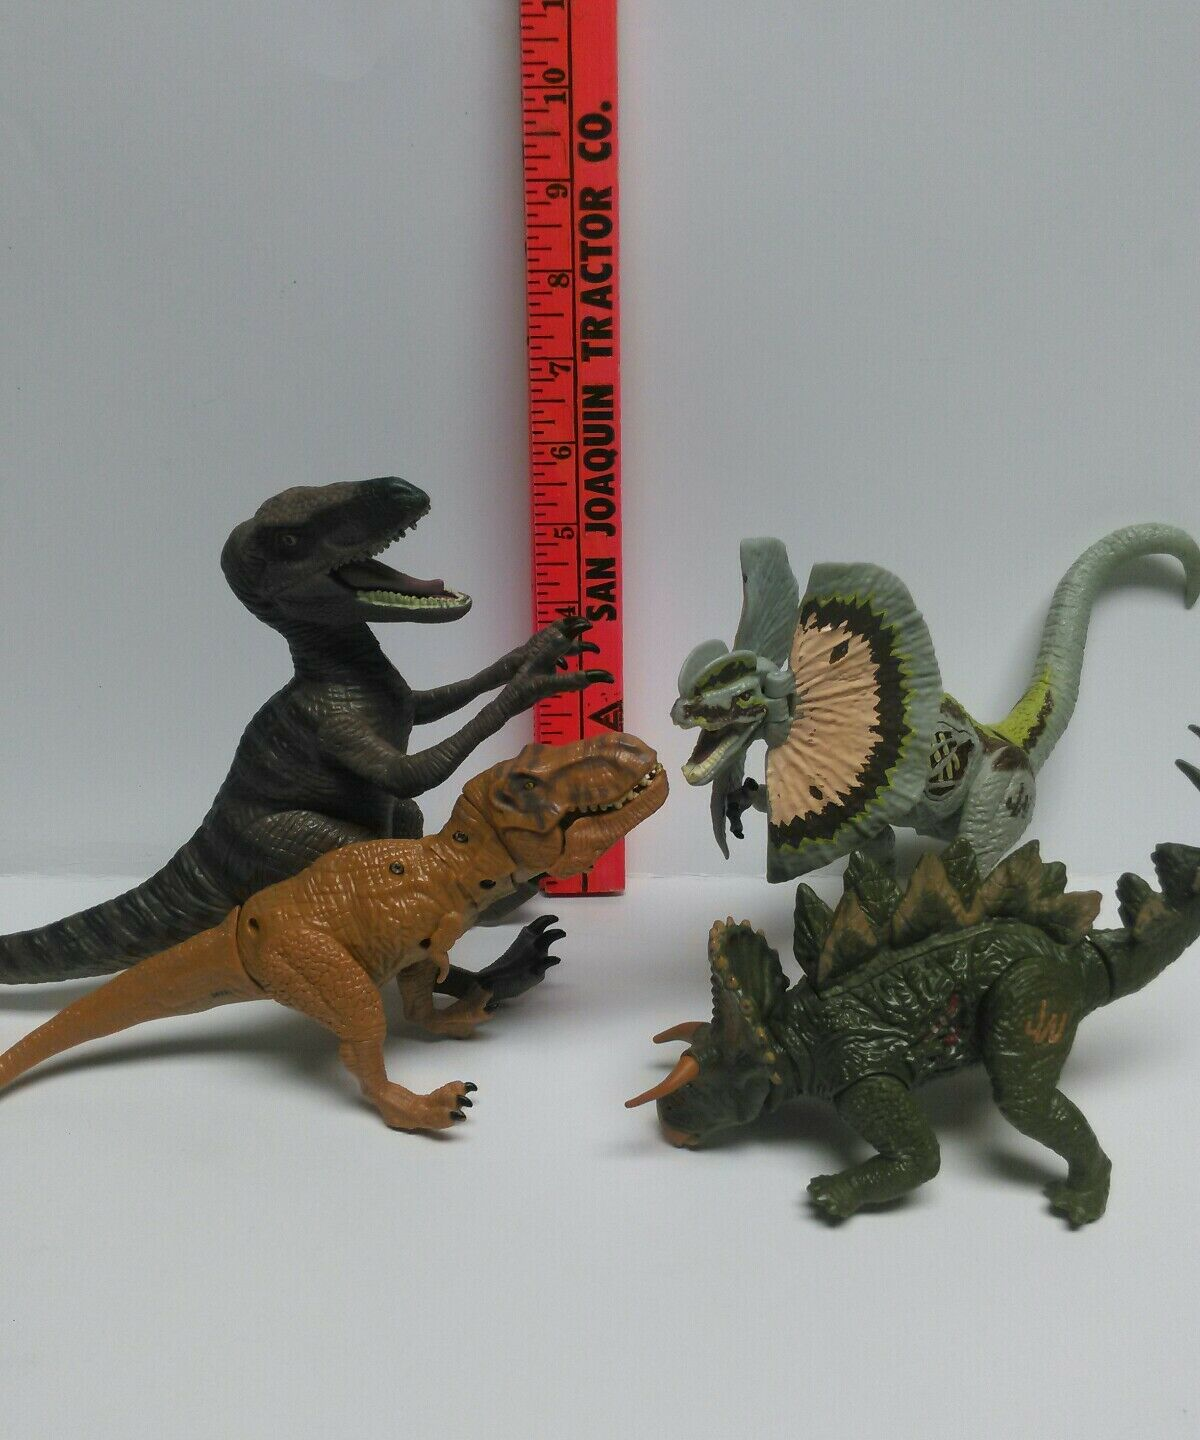 Lot of of of 4 Kenner Jurassic World Dinosaur T Rex action figures Toy Lot JW 2272cd